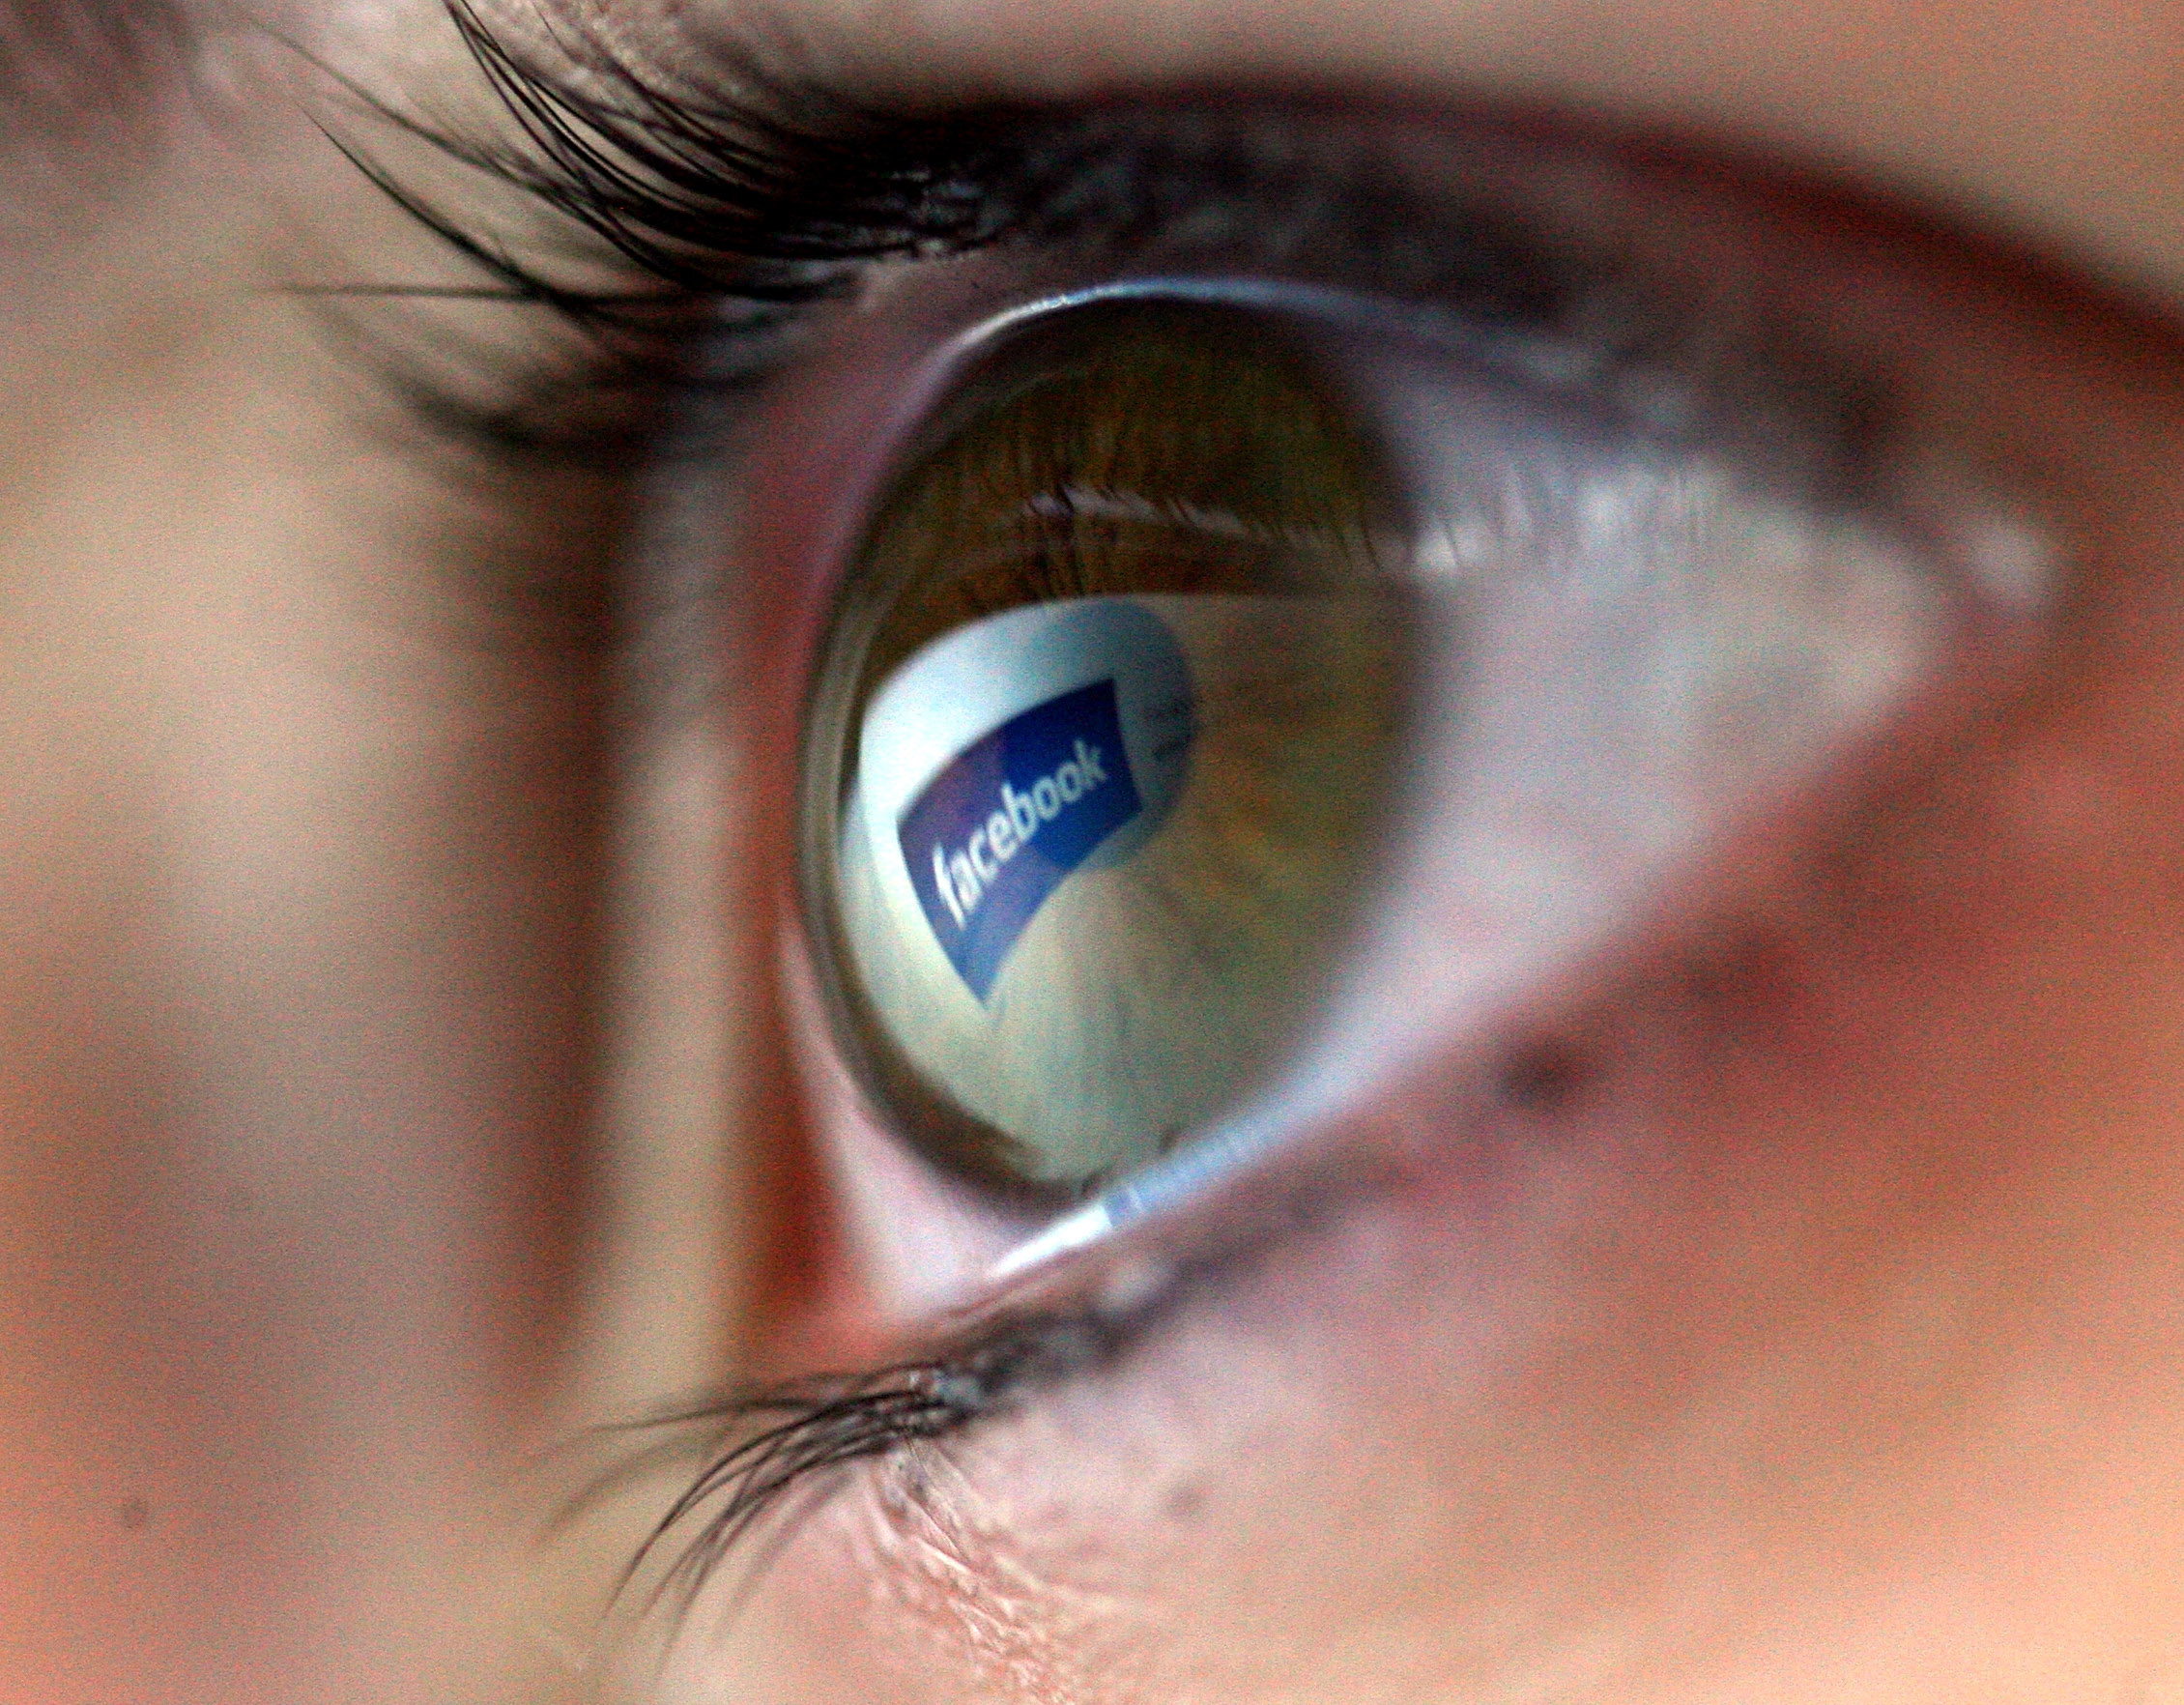 Facebook opens up its social TV data for the first time in partnership with UK analytics firm SecondSync